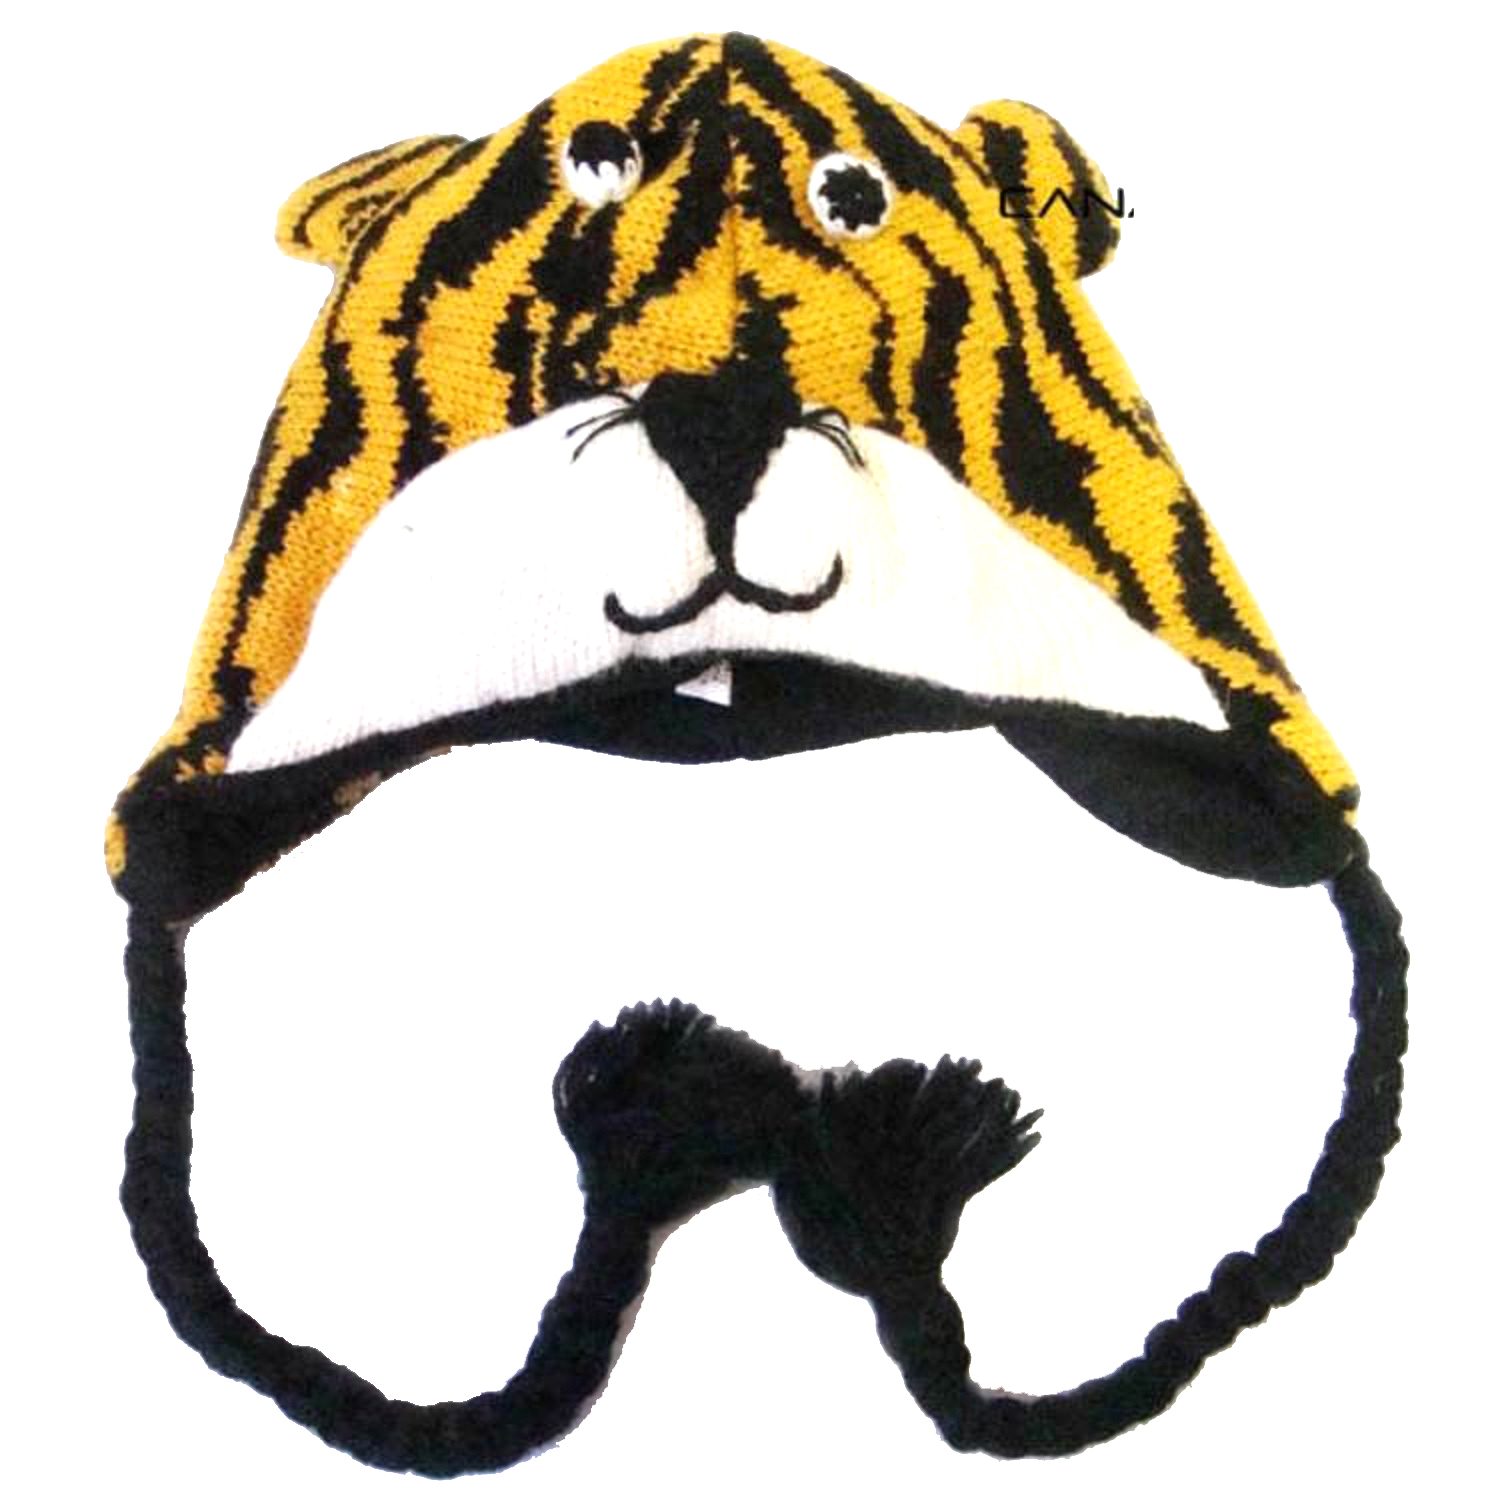 Belle Donne - Winter Hats Animal Hats Pom Pom Style Knit Plush Beanies for Women - Yellow Tiger